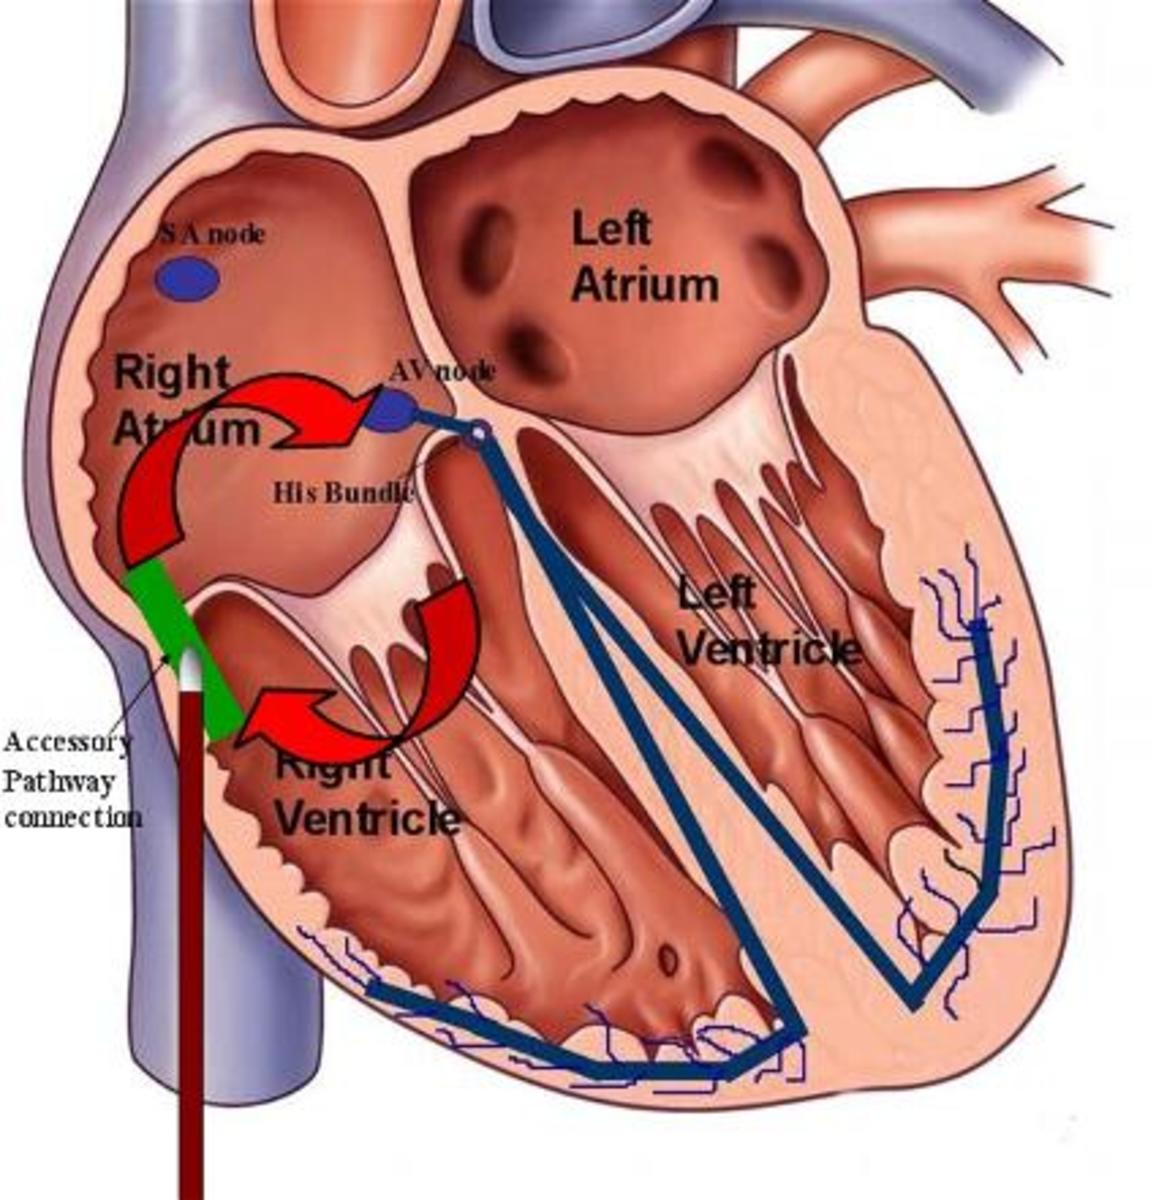 During this procedure, the section of the heart that is causing the problem is cauterized.